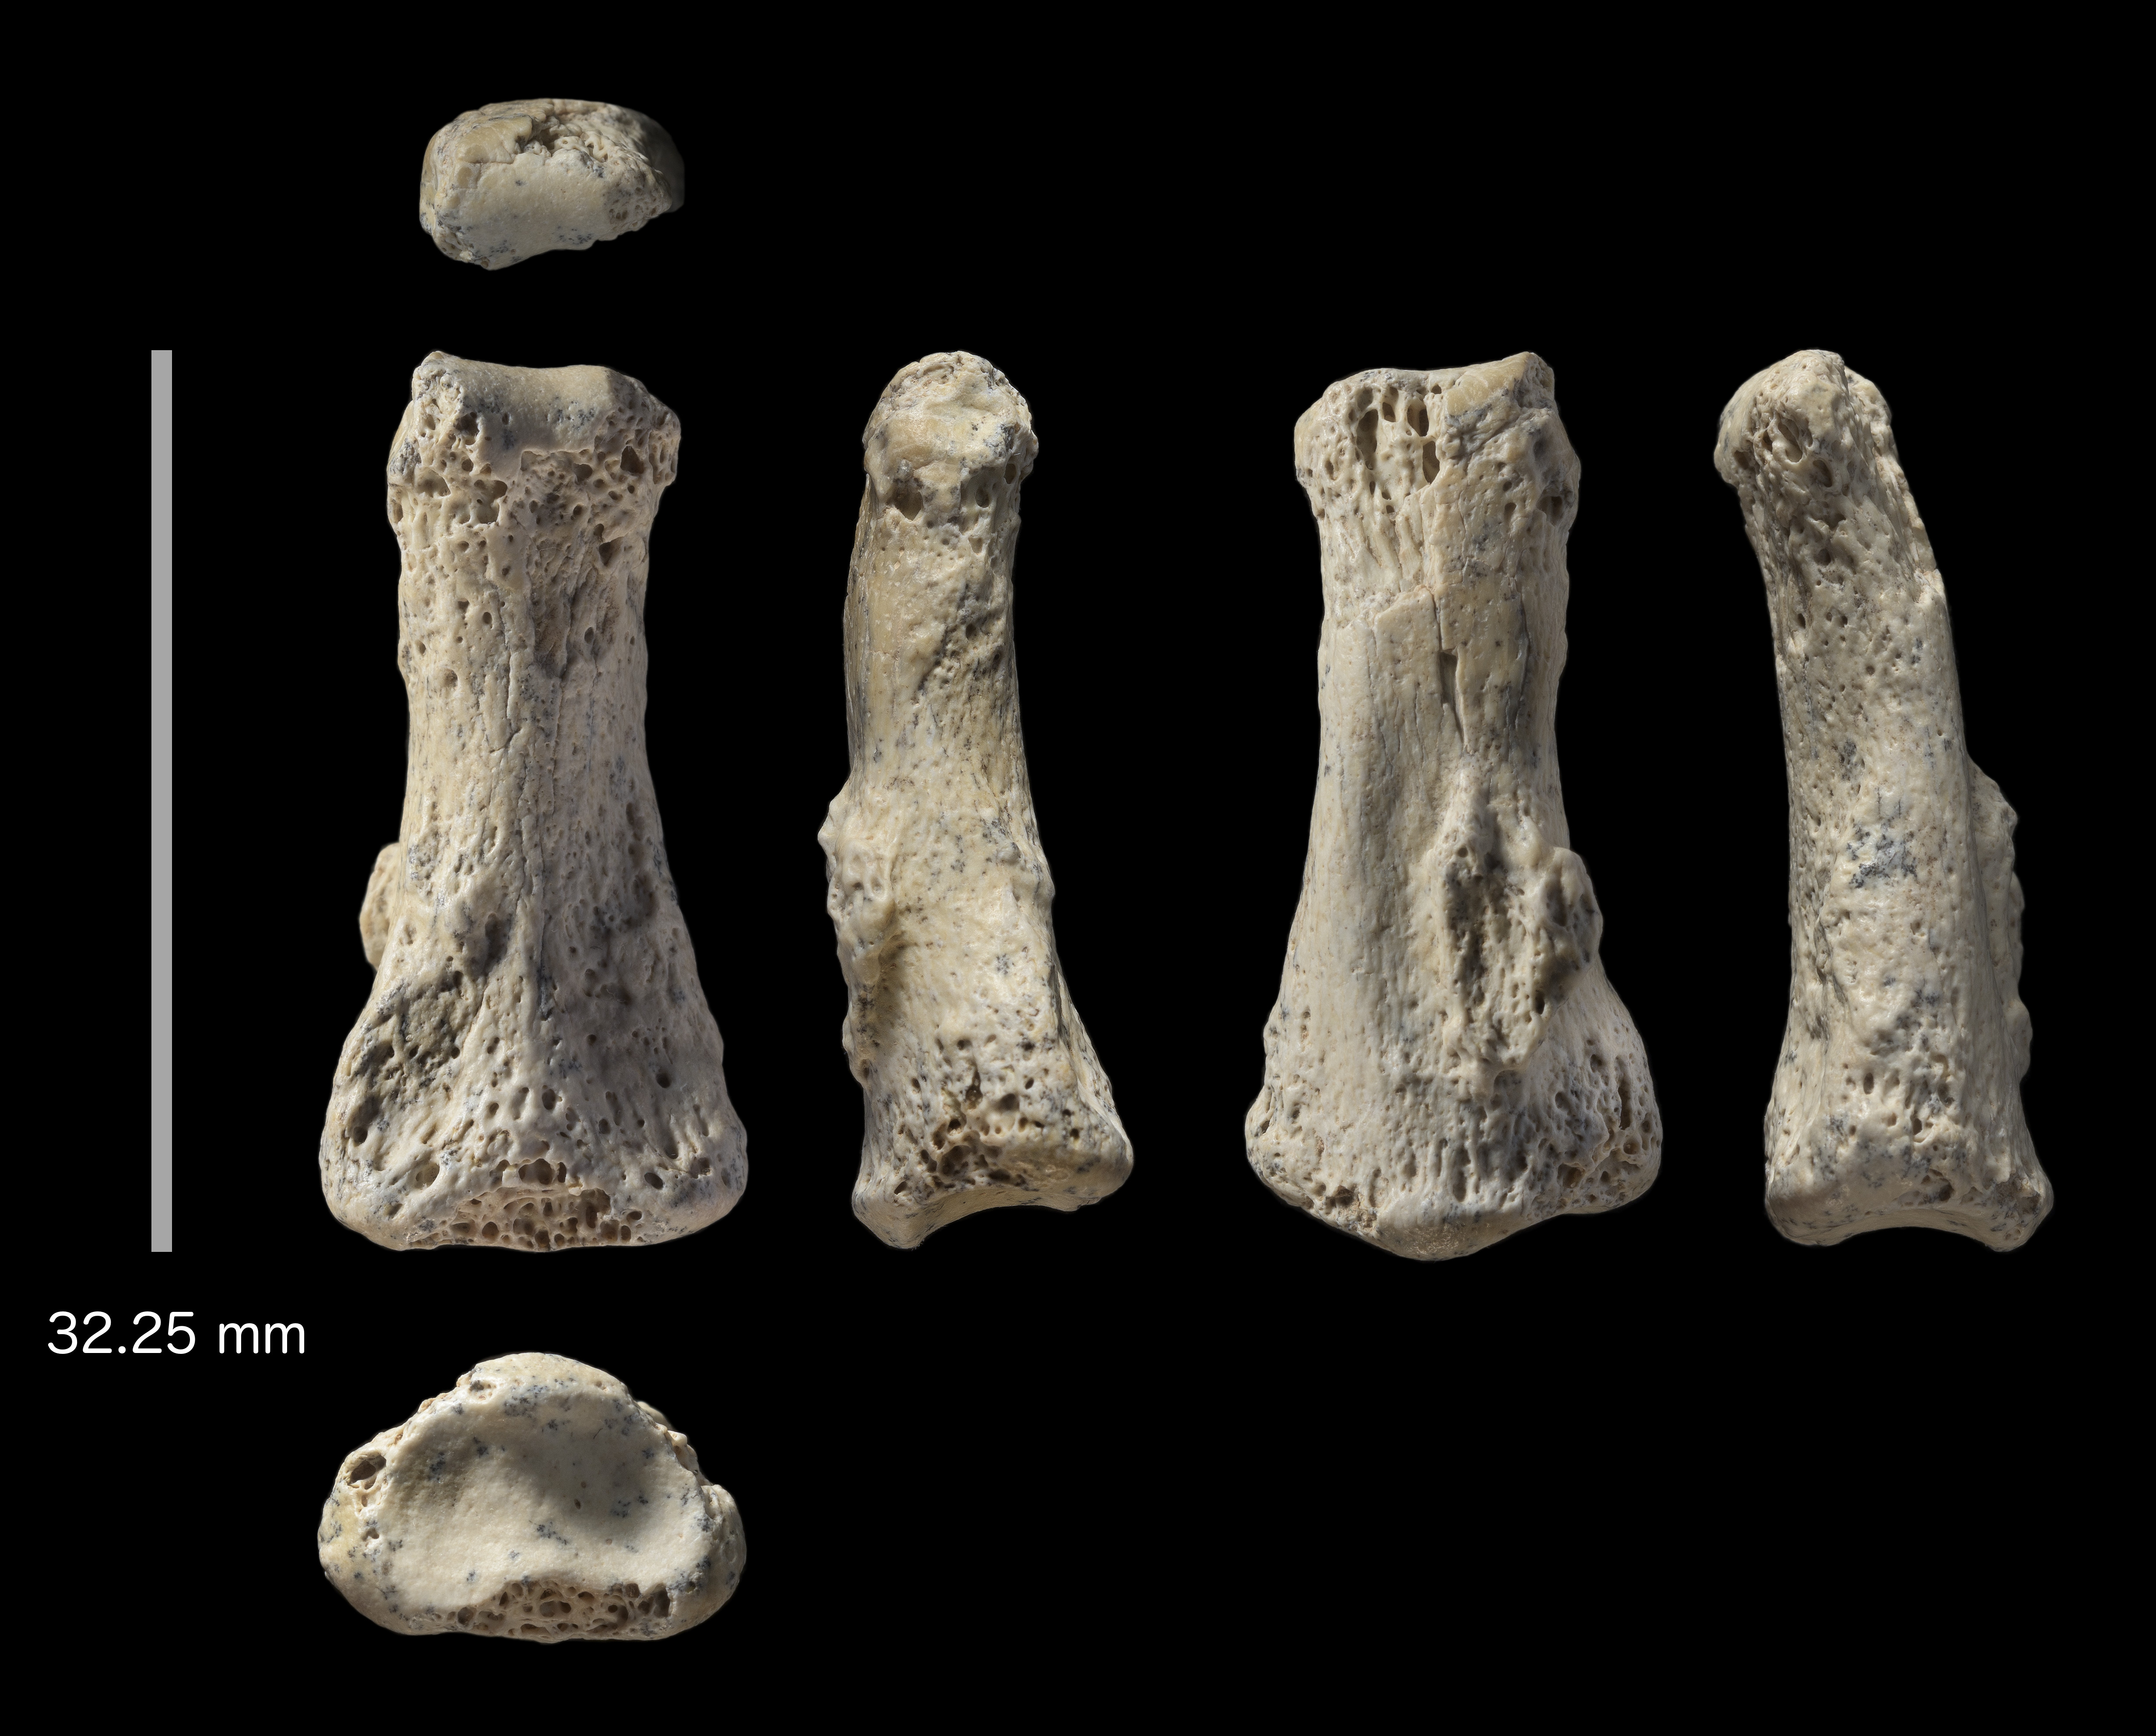 Ancient bones suggest first humans travelled further than we think